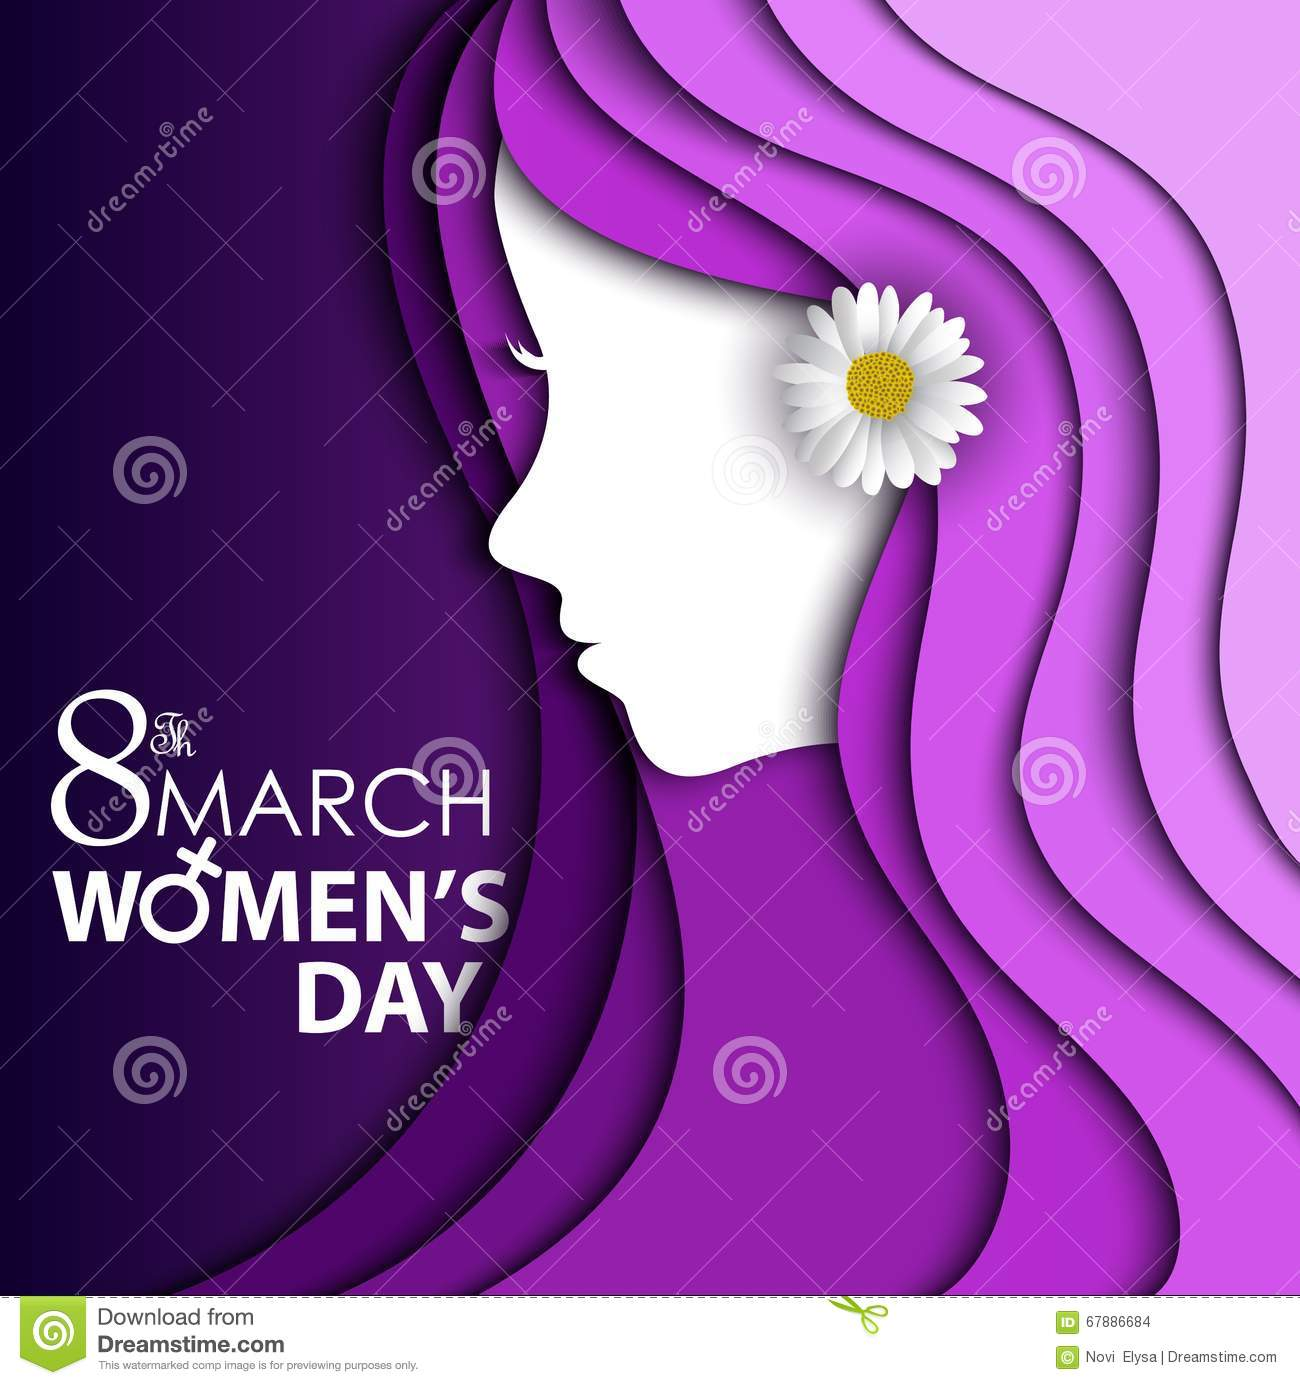 Women s Day greeting card with flower in ear on purple background with design of a women face and text 8th March Women Day